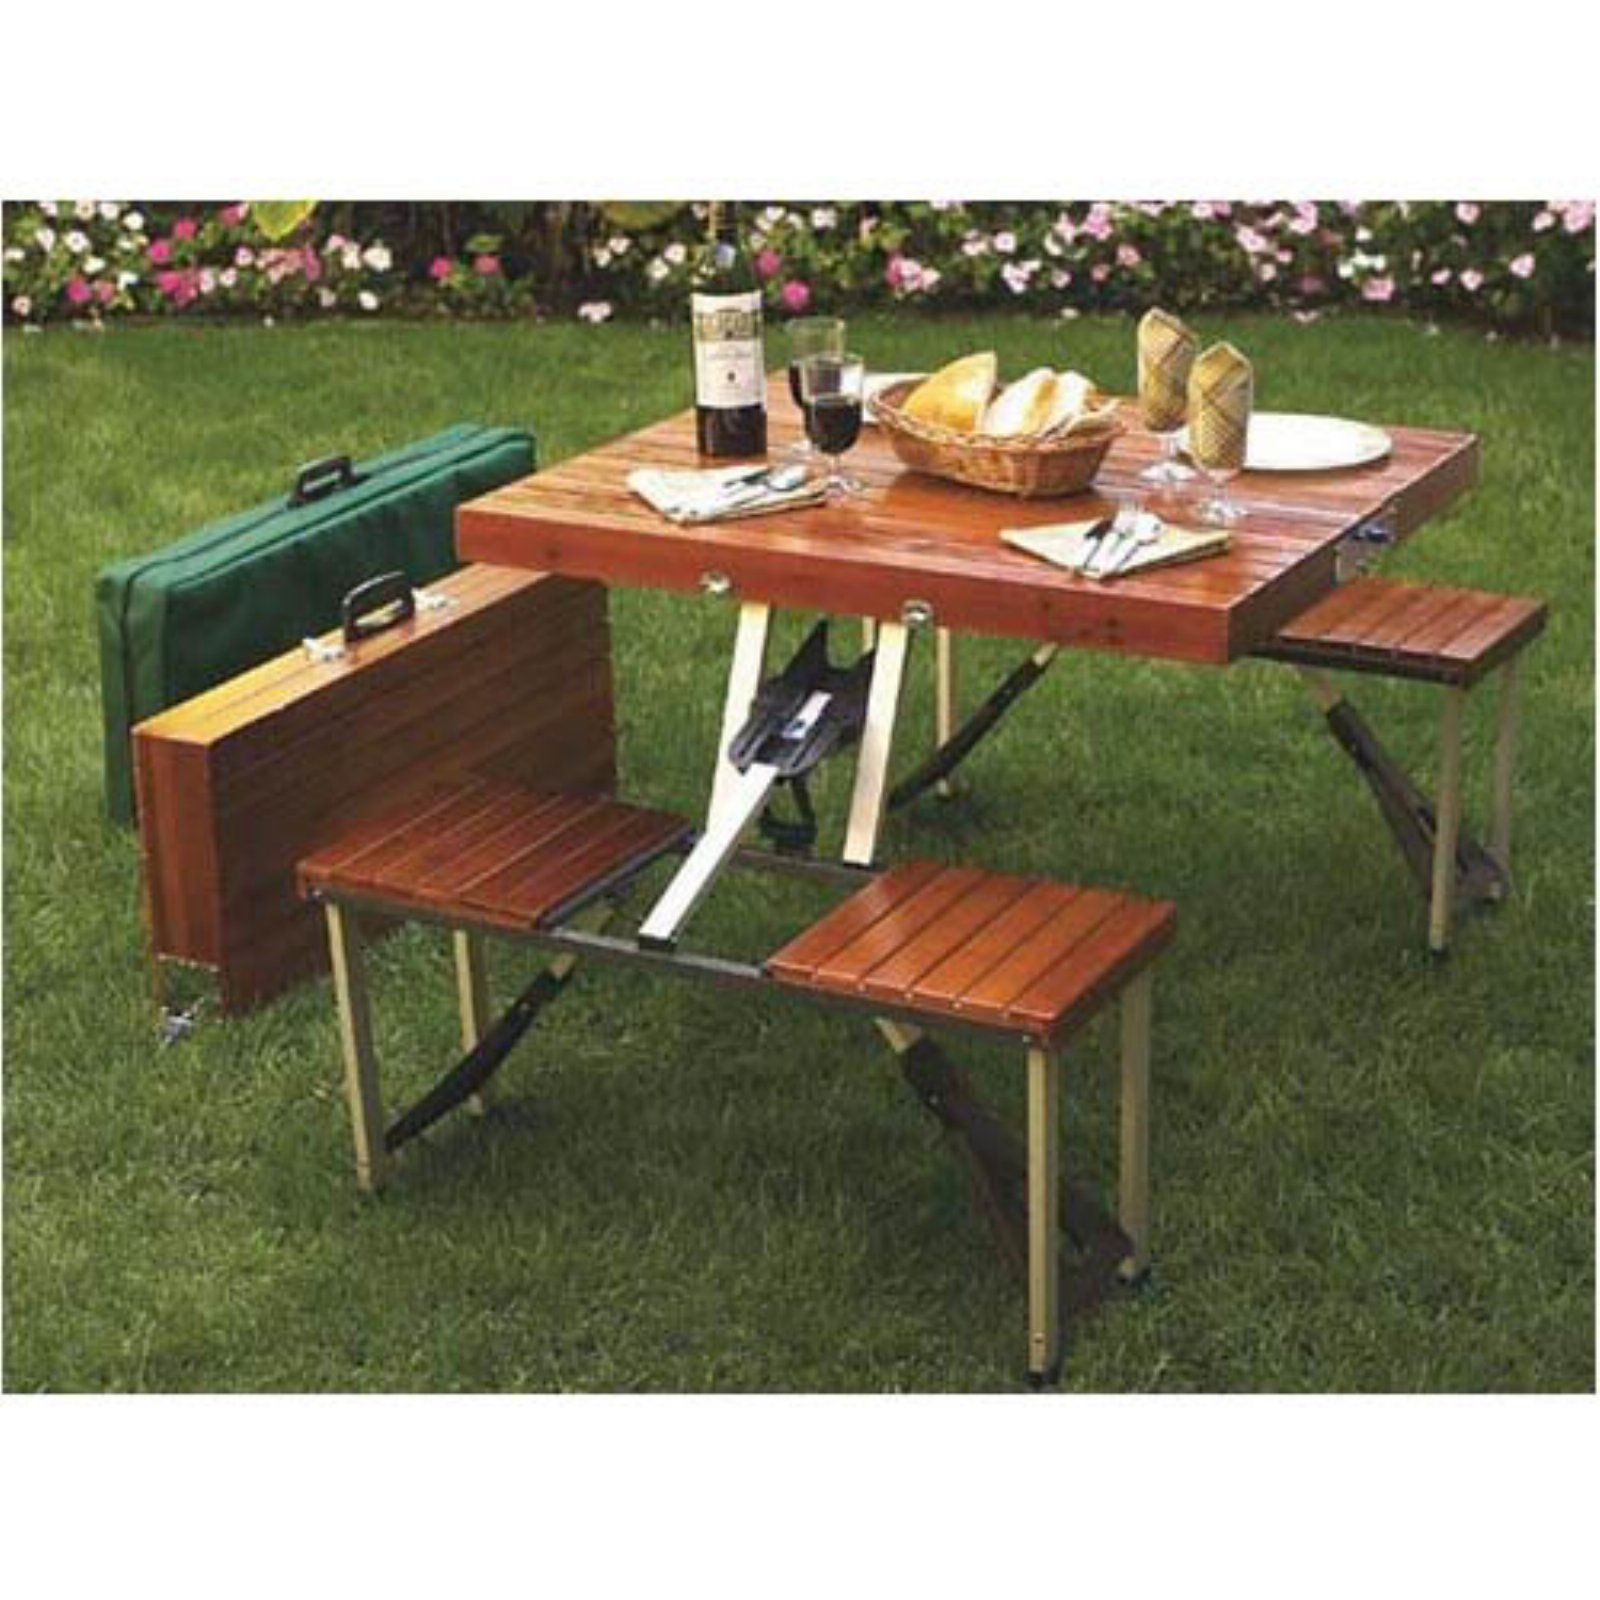 Outdoor Leisure Season 4 Person Folding Picnic Table In 2019